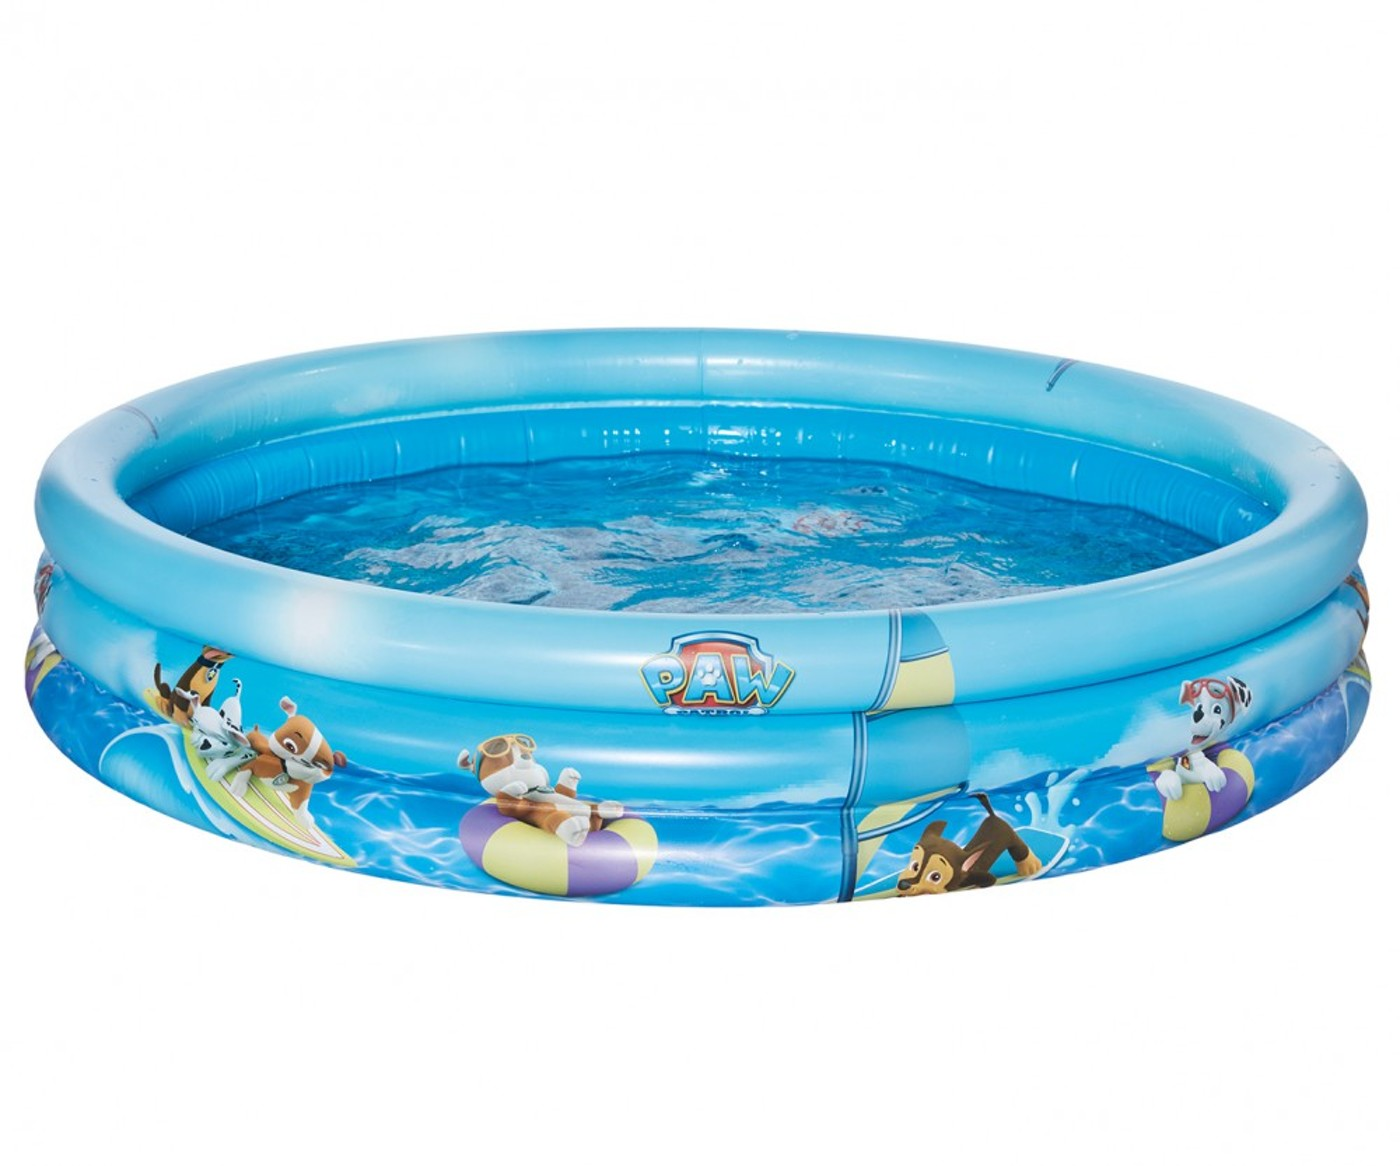 HAPPY PEOPLE Paw Patrol 3-Ring-Pool - Kinder